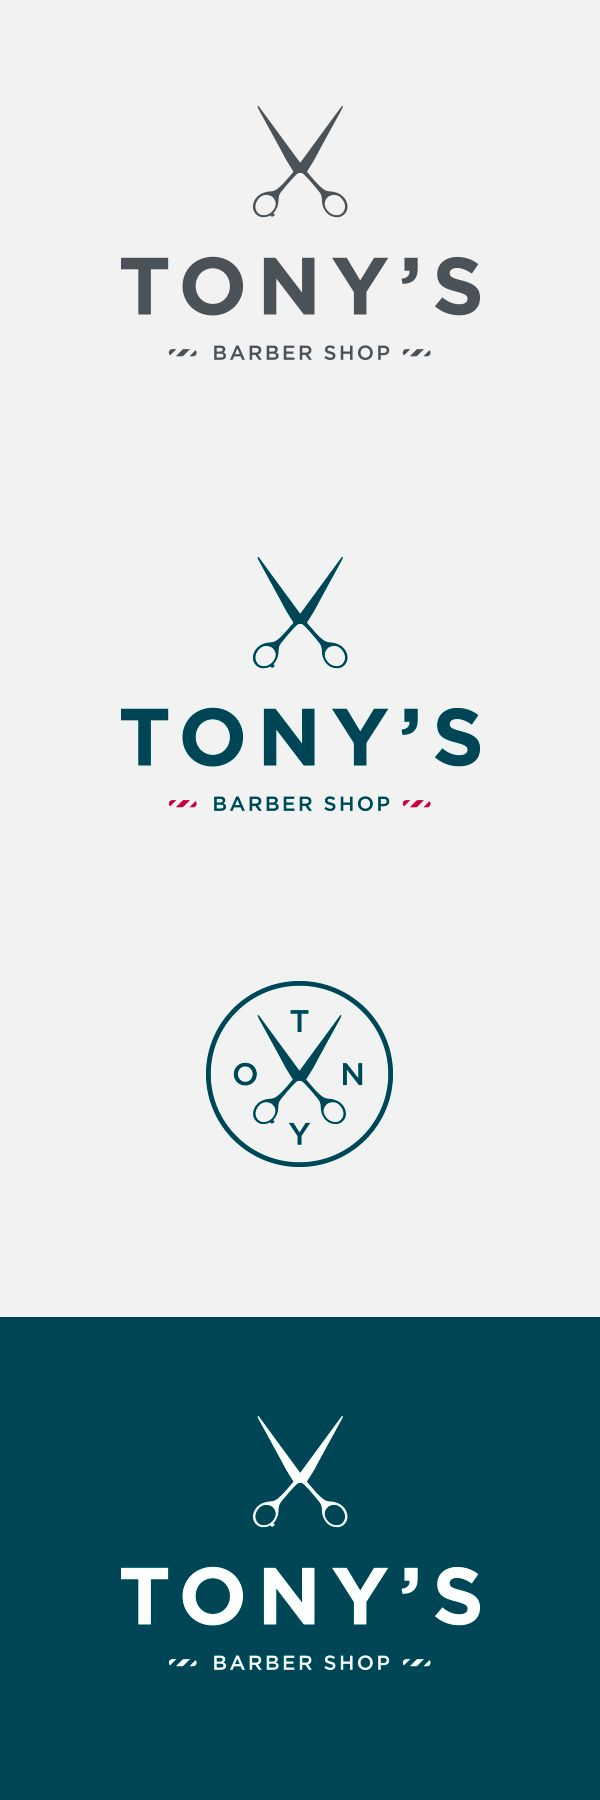 Logo Salon De Coiffure Barber Shop Logo Branding Barber Pinterest Salon De